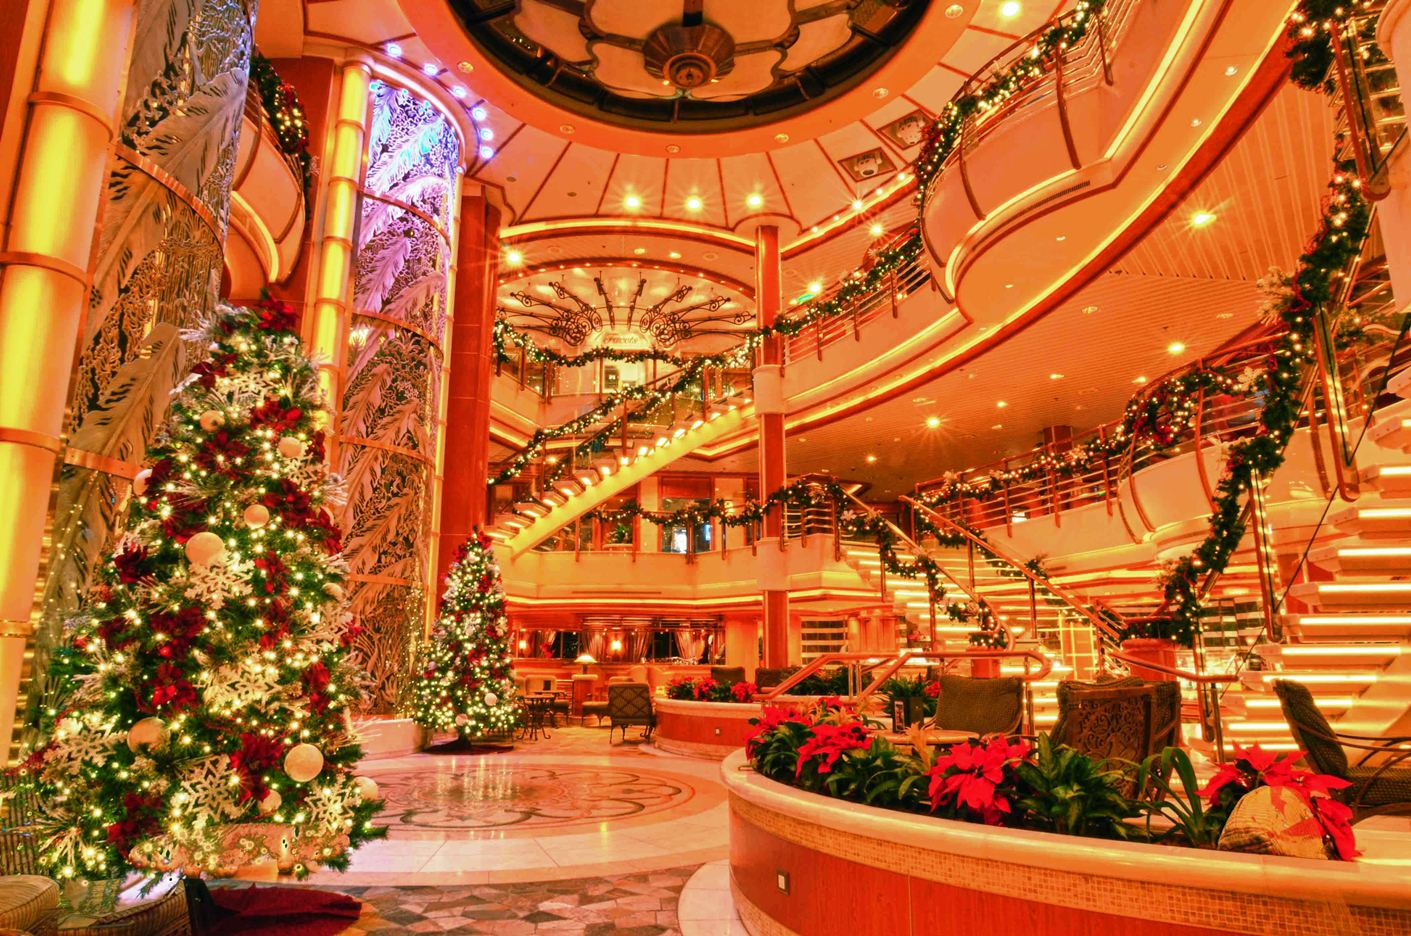 Cruise News From CruiseSource - December 14, 2012 ...